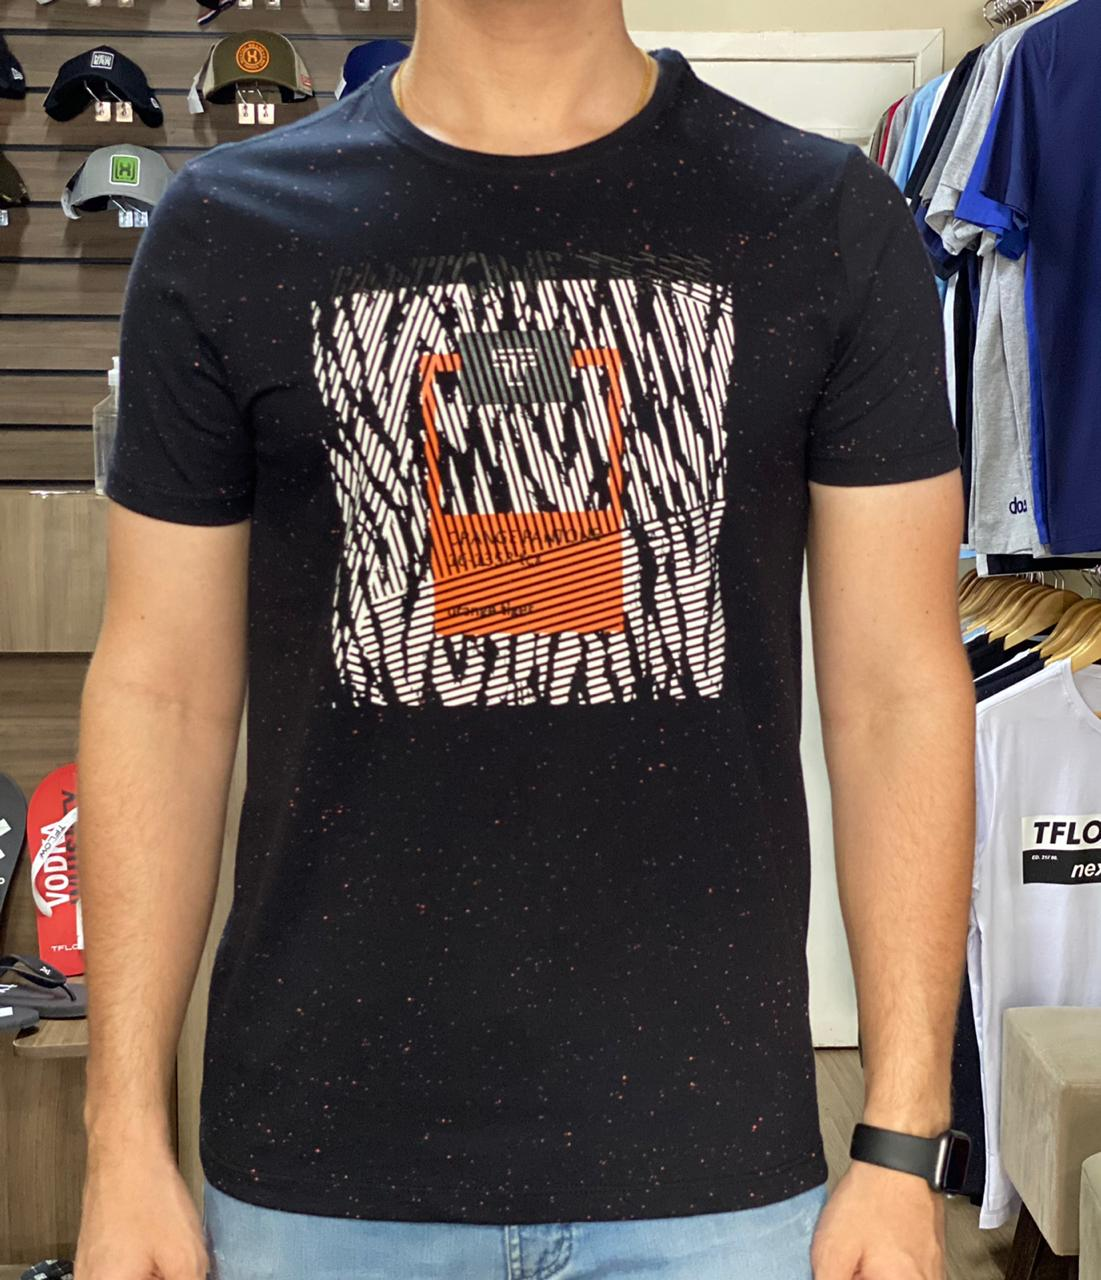 Camiseta Tflow Pantone Tiger 1267002004